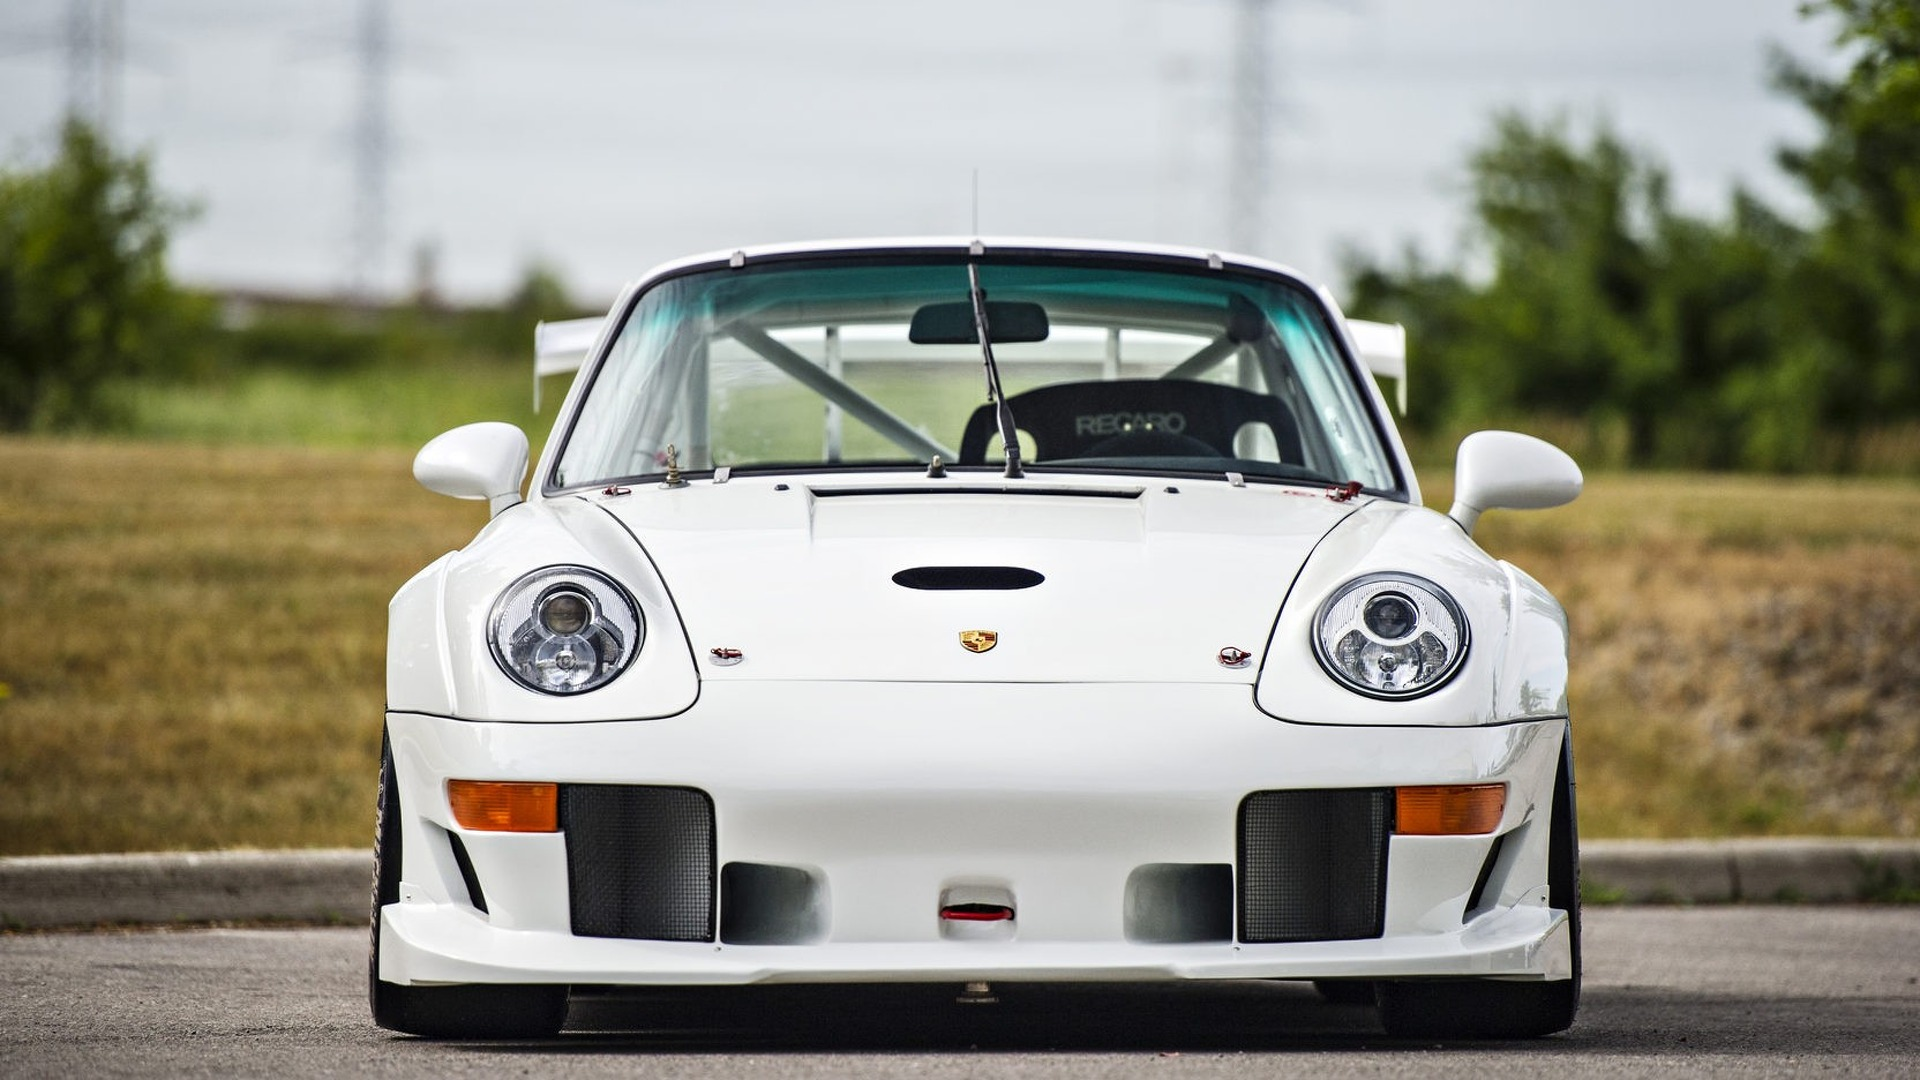 Porsche 911 GT2 Evo 1996 in auction (2)